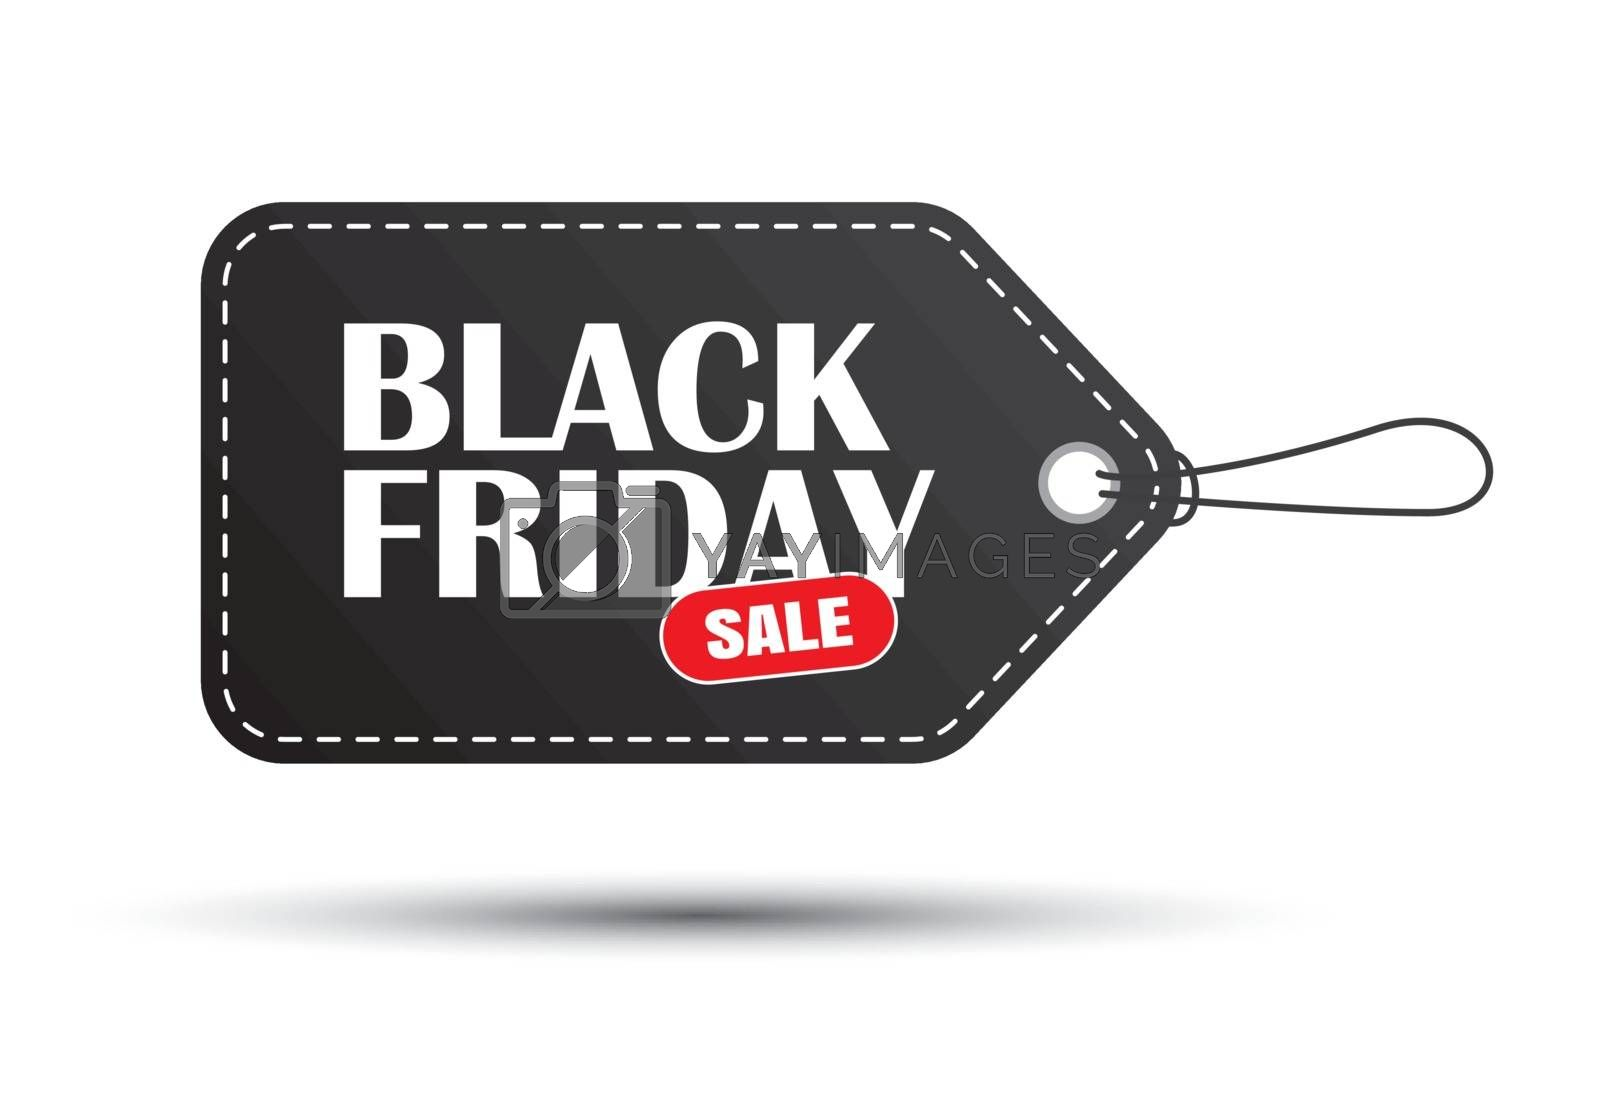 Black friday sale black tag isolated on white background. Use for banner template, discount, shopping, promotion, advertising.